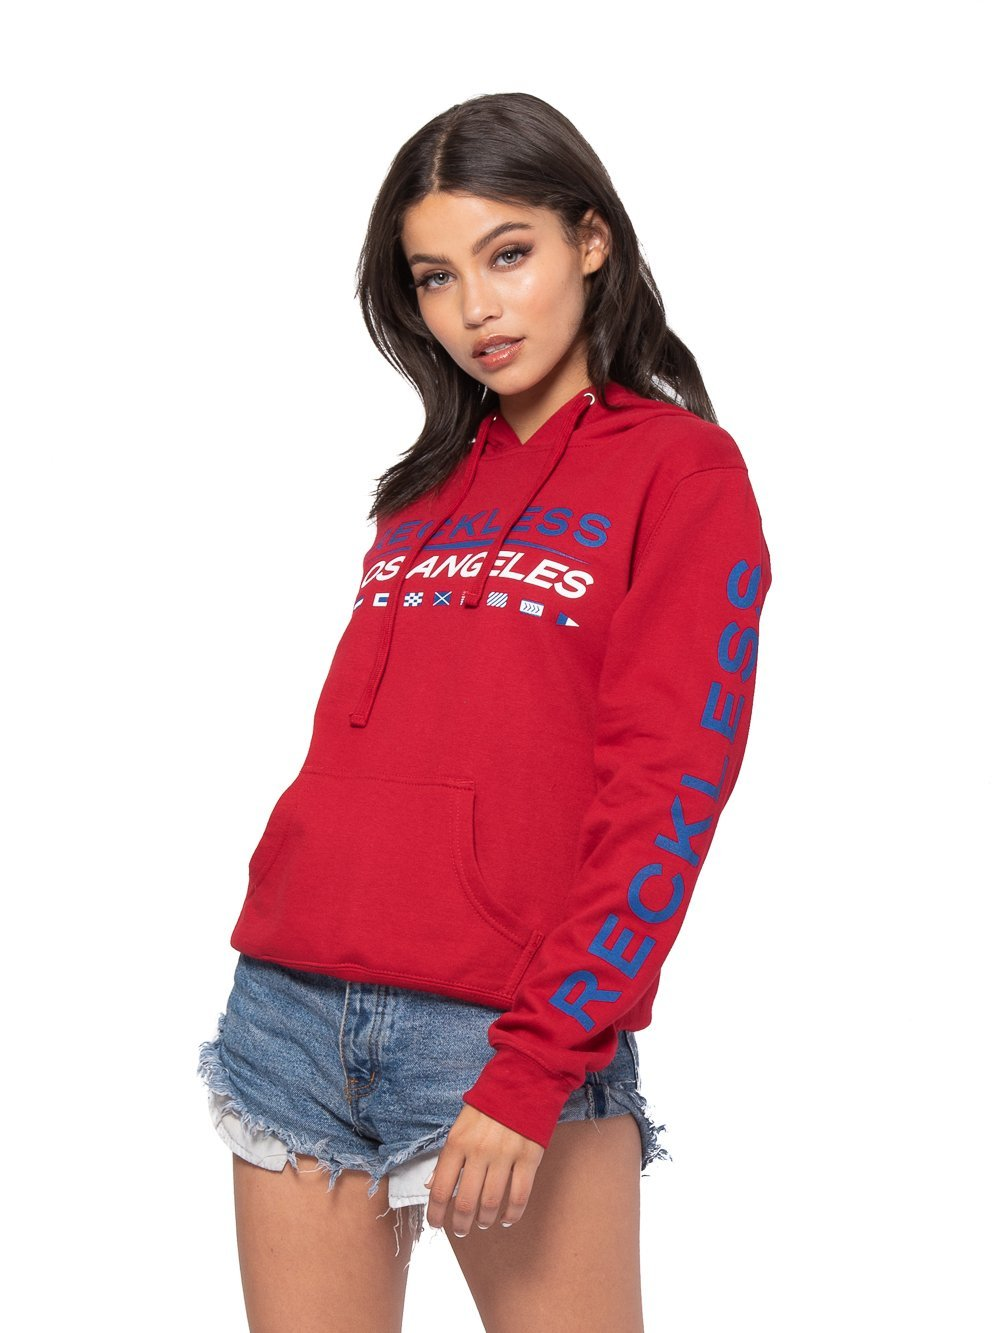 Reckless Girls Womens - Tops - Sweatshirts Nautical Jr Hoodie - Red